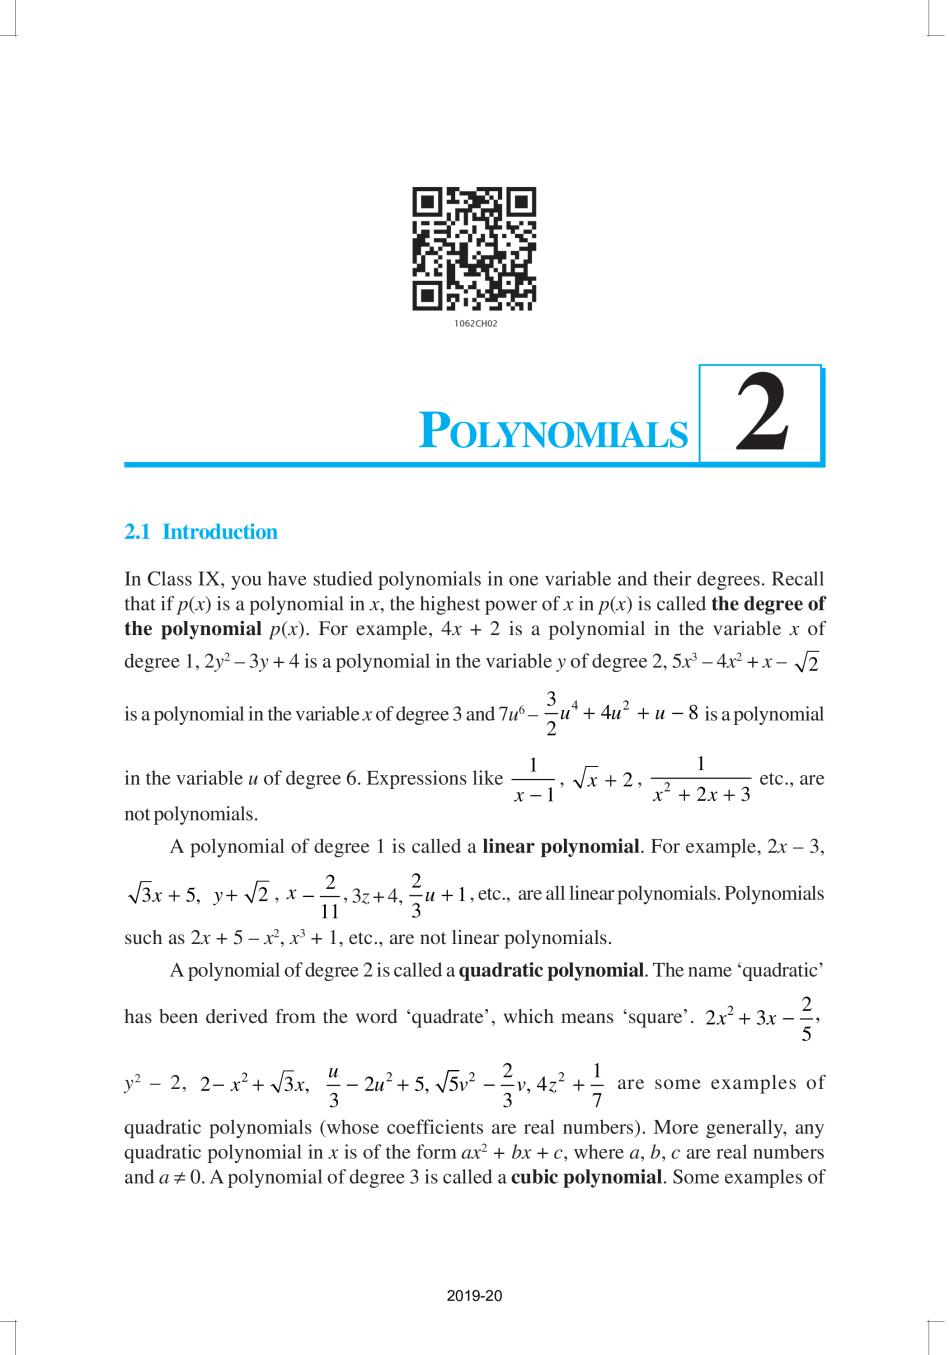 NCERT Book Class 10 Maths Chapter 2 Polynomials - Page 1